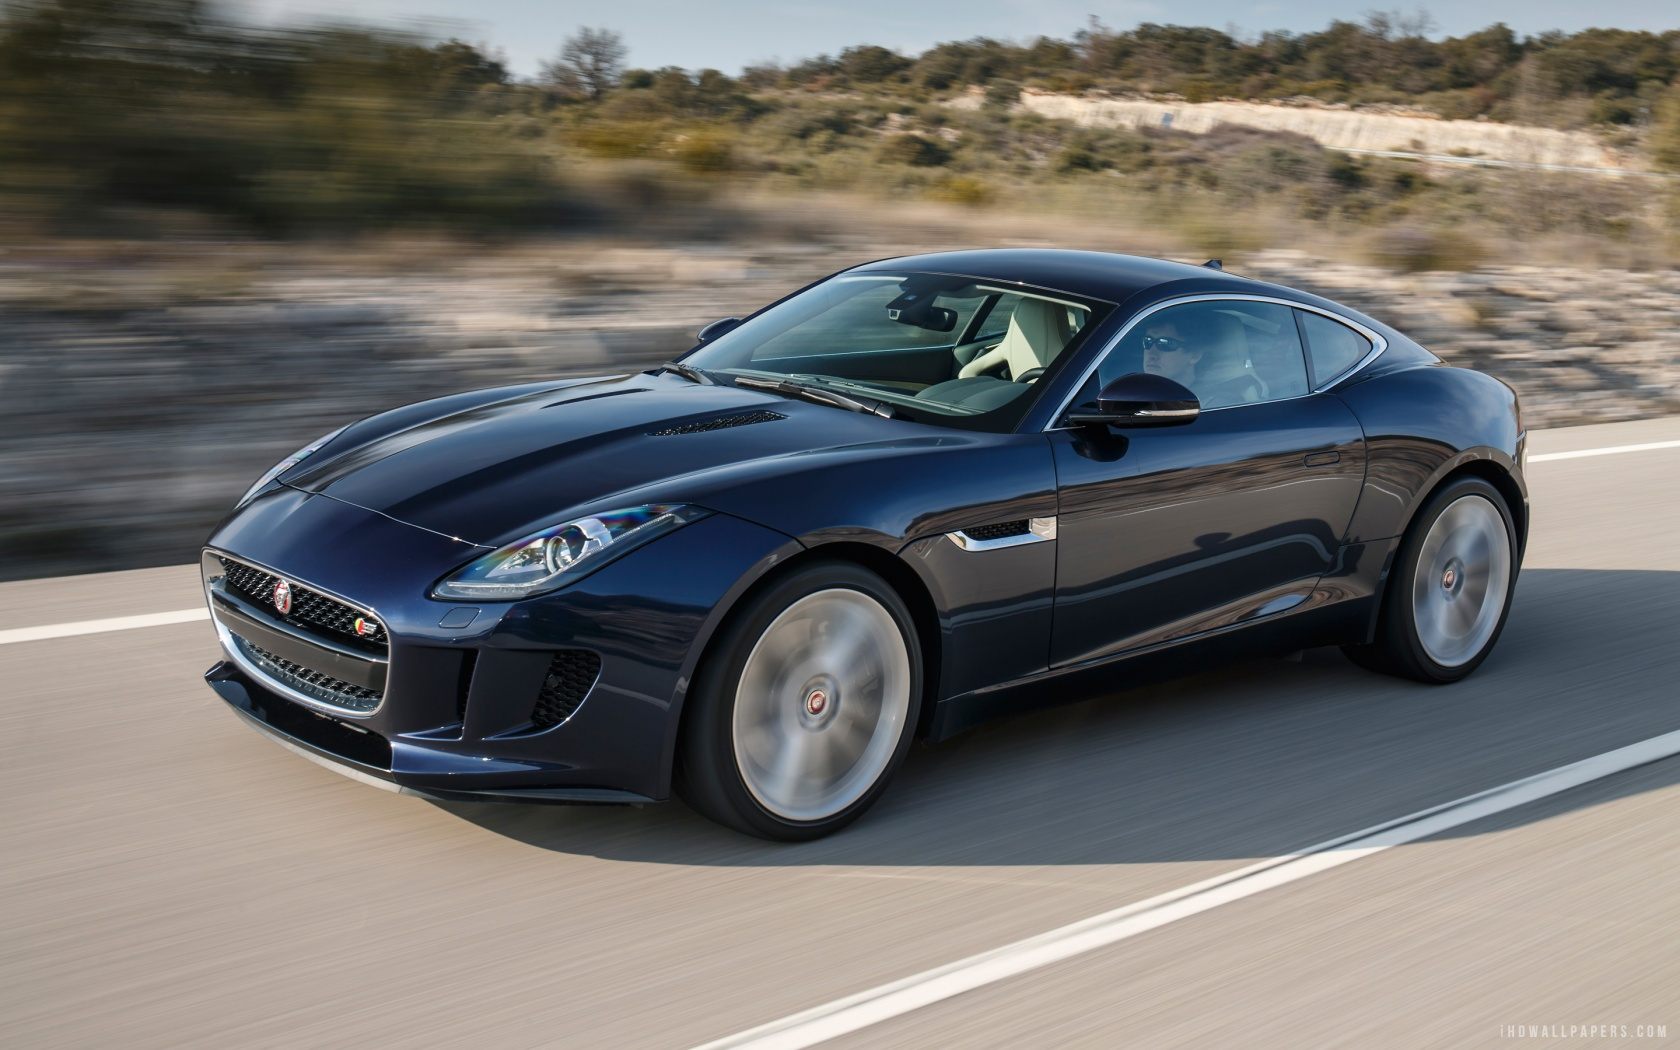 Jaguar Car Wallpaper Wallpapers High Quality: Jaguar F Type Wallpaper